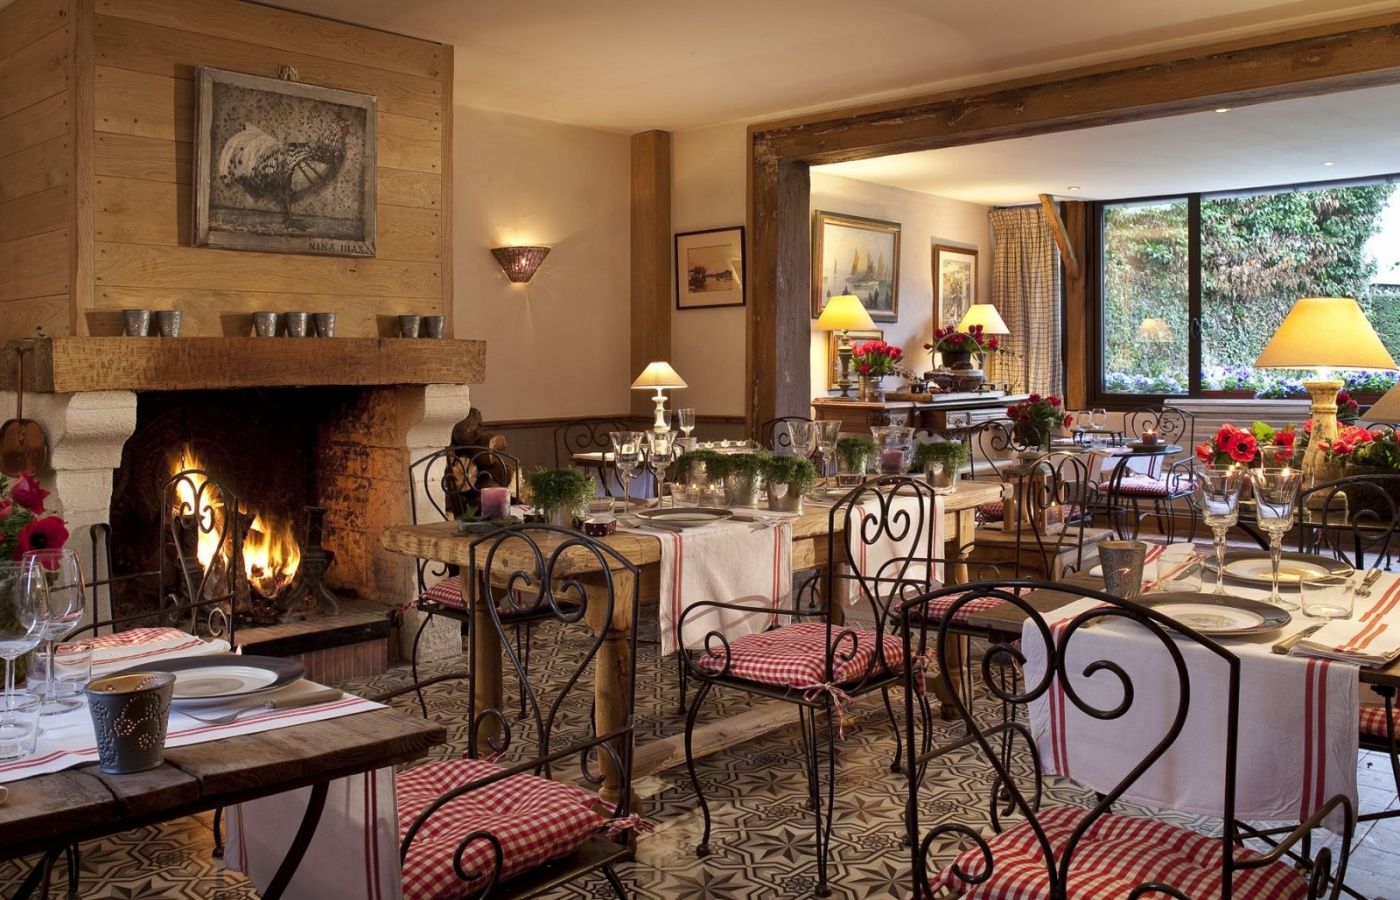 Auberge de la Source Hotel and Restaurant in Normandy, France, close to Honfleur